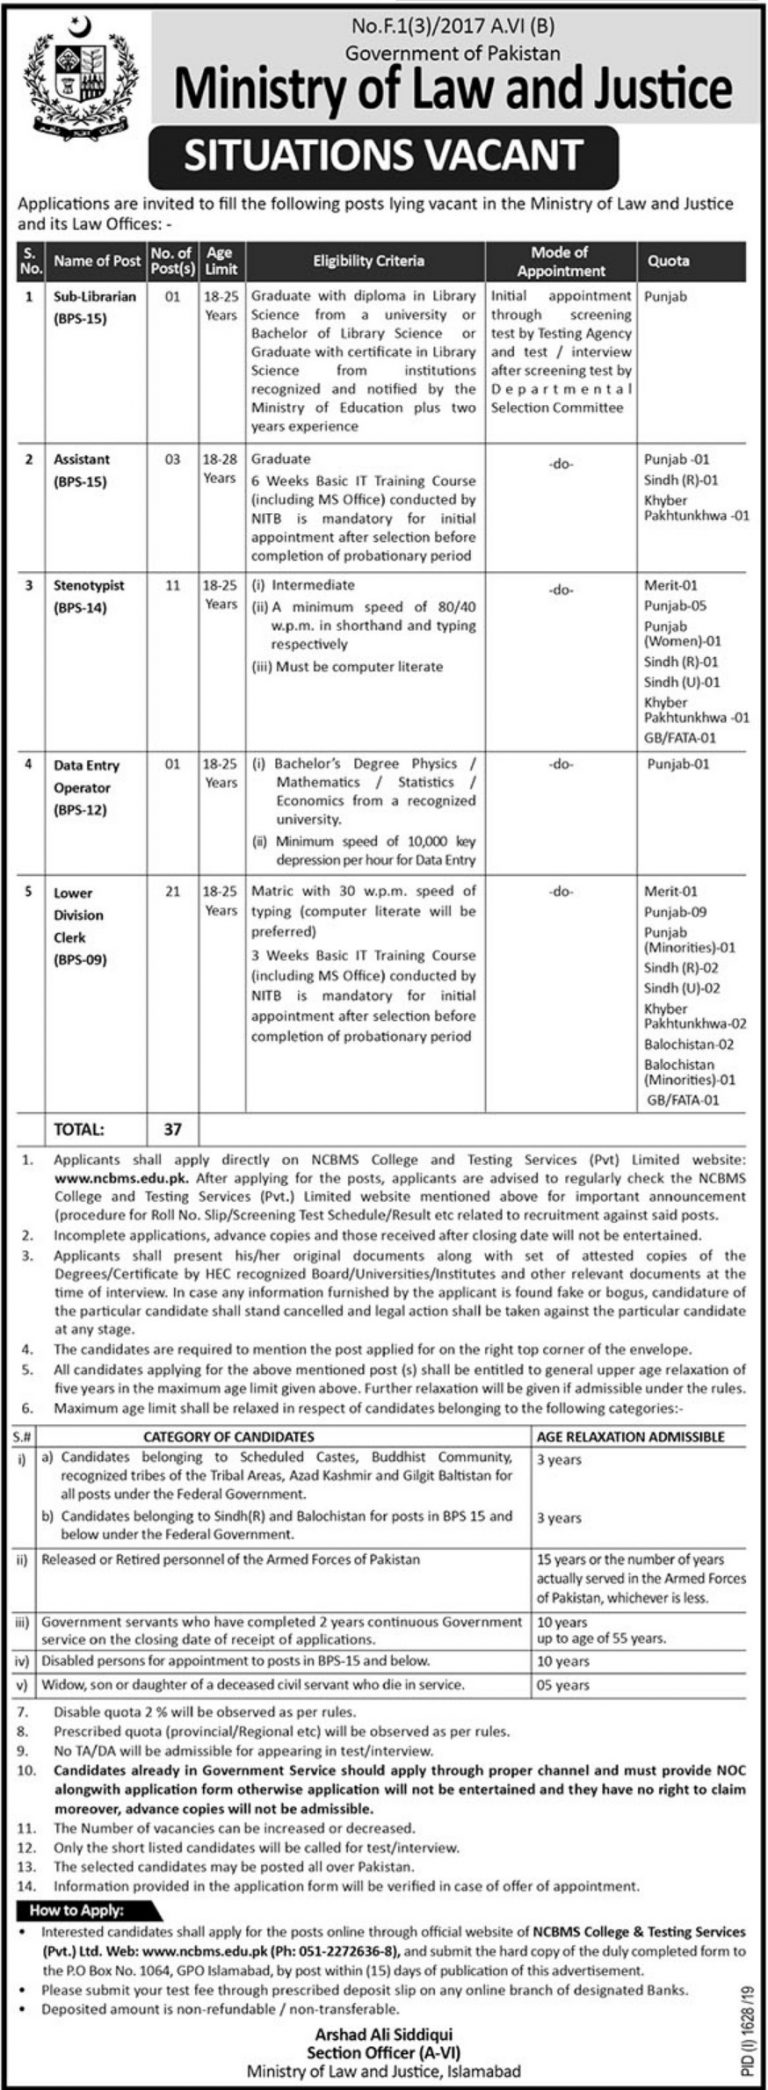 Ministry of Law & Justice Pakistan Jobs 2019 Application Form Download | www.molaw.gov.pk